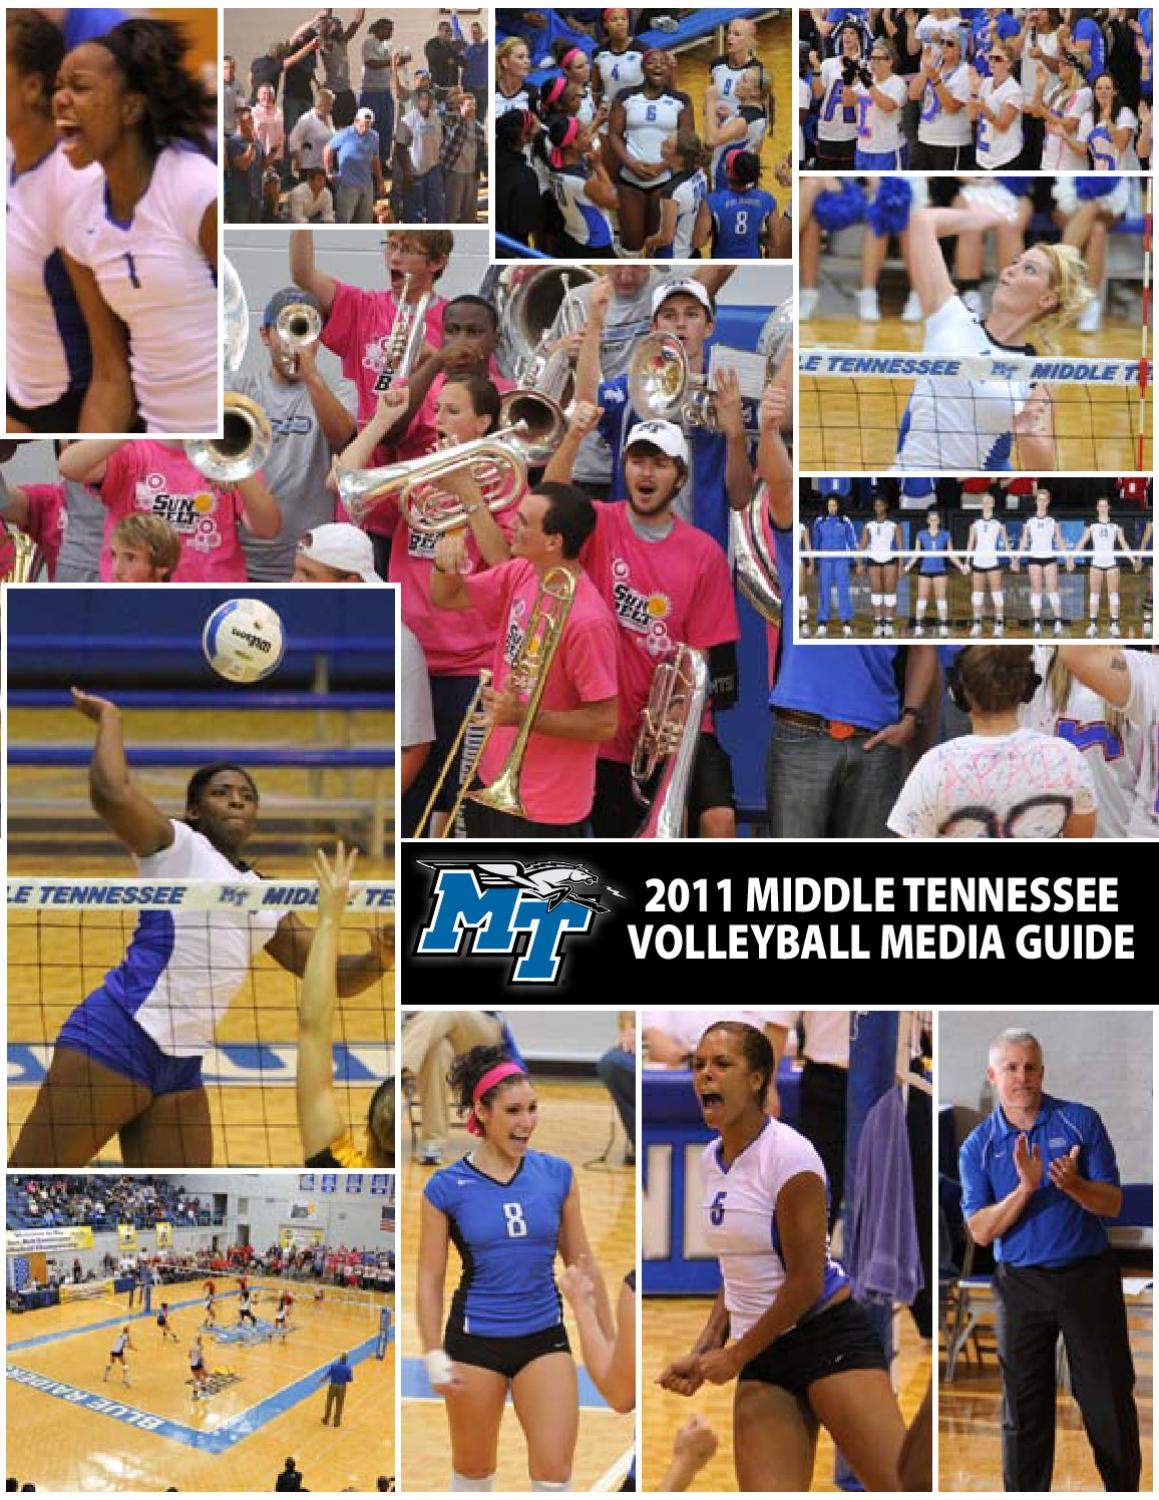 2011 Middle Tennessee Volleyball Media Guide By Clay Trainum Issuu